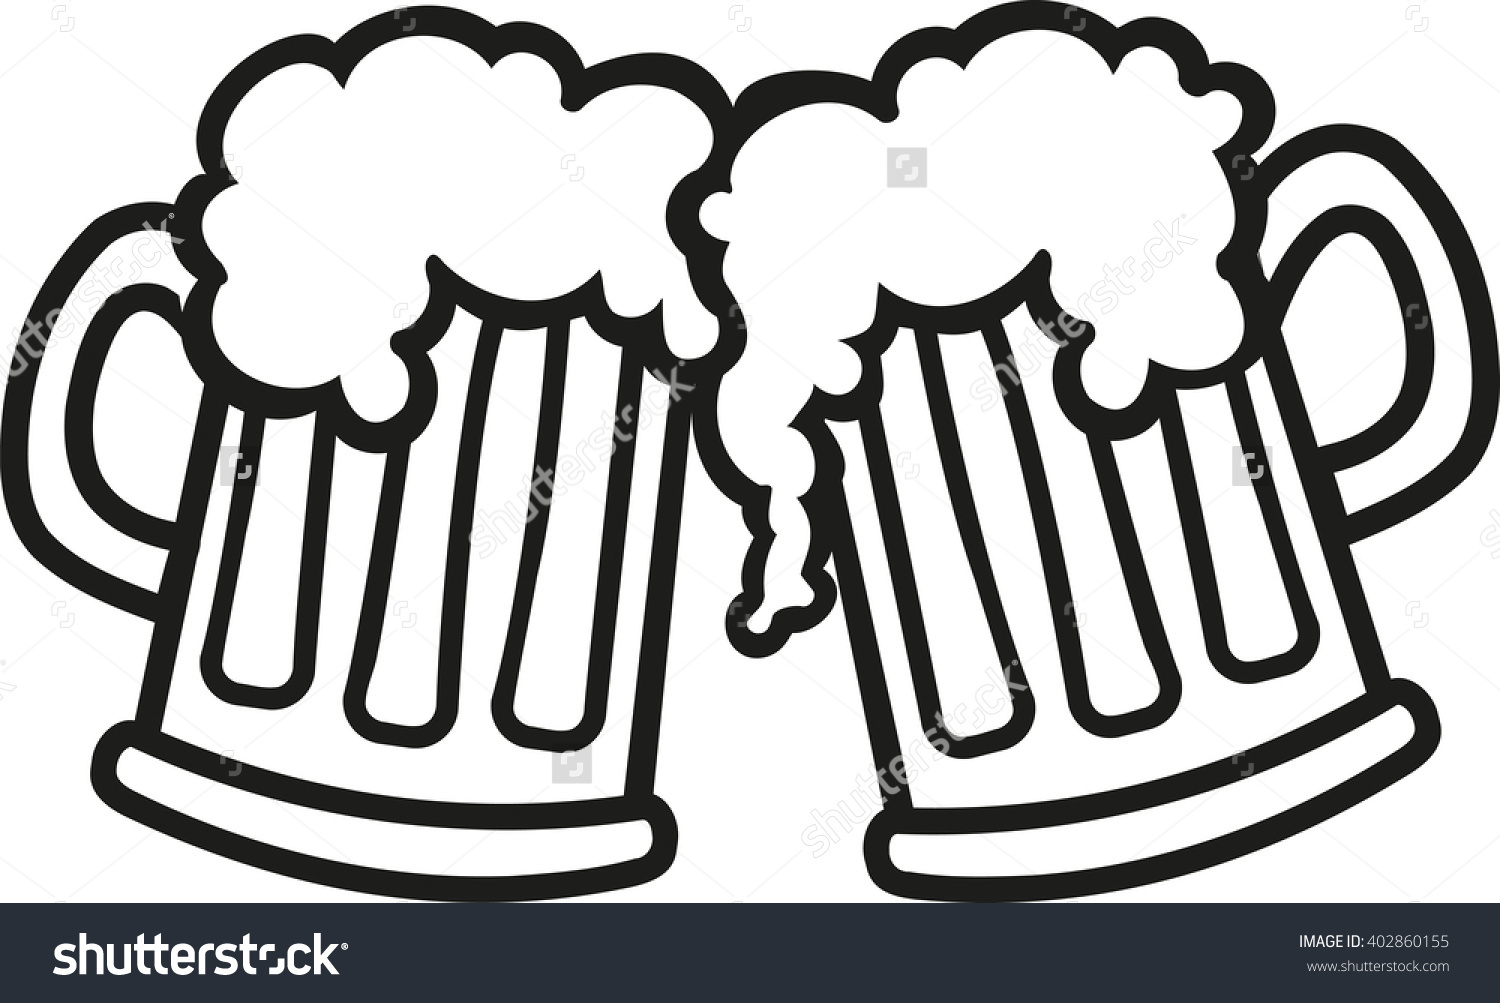 Beer mugs clipart - Clipground